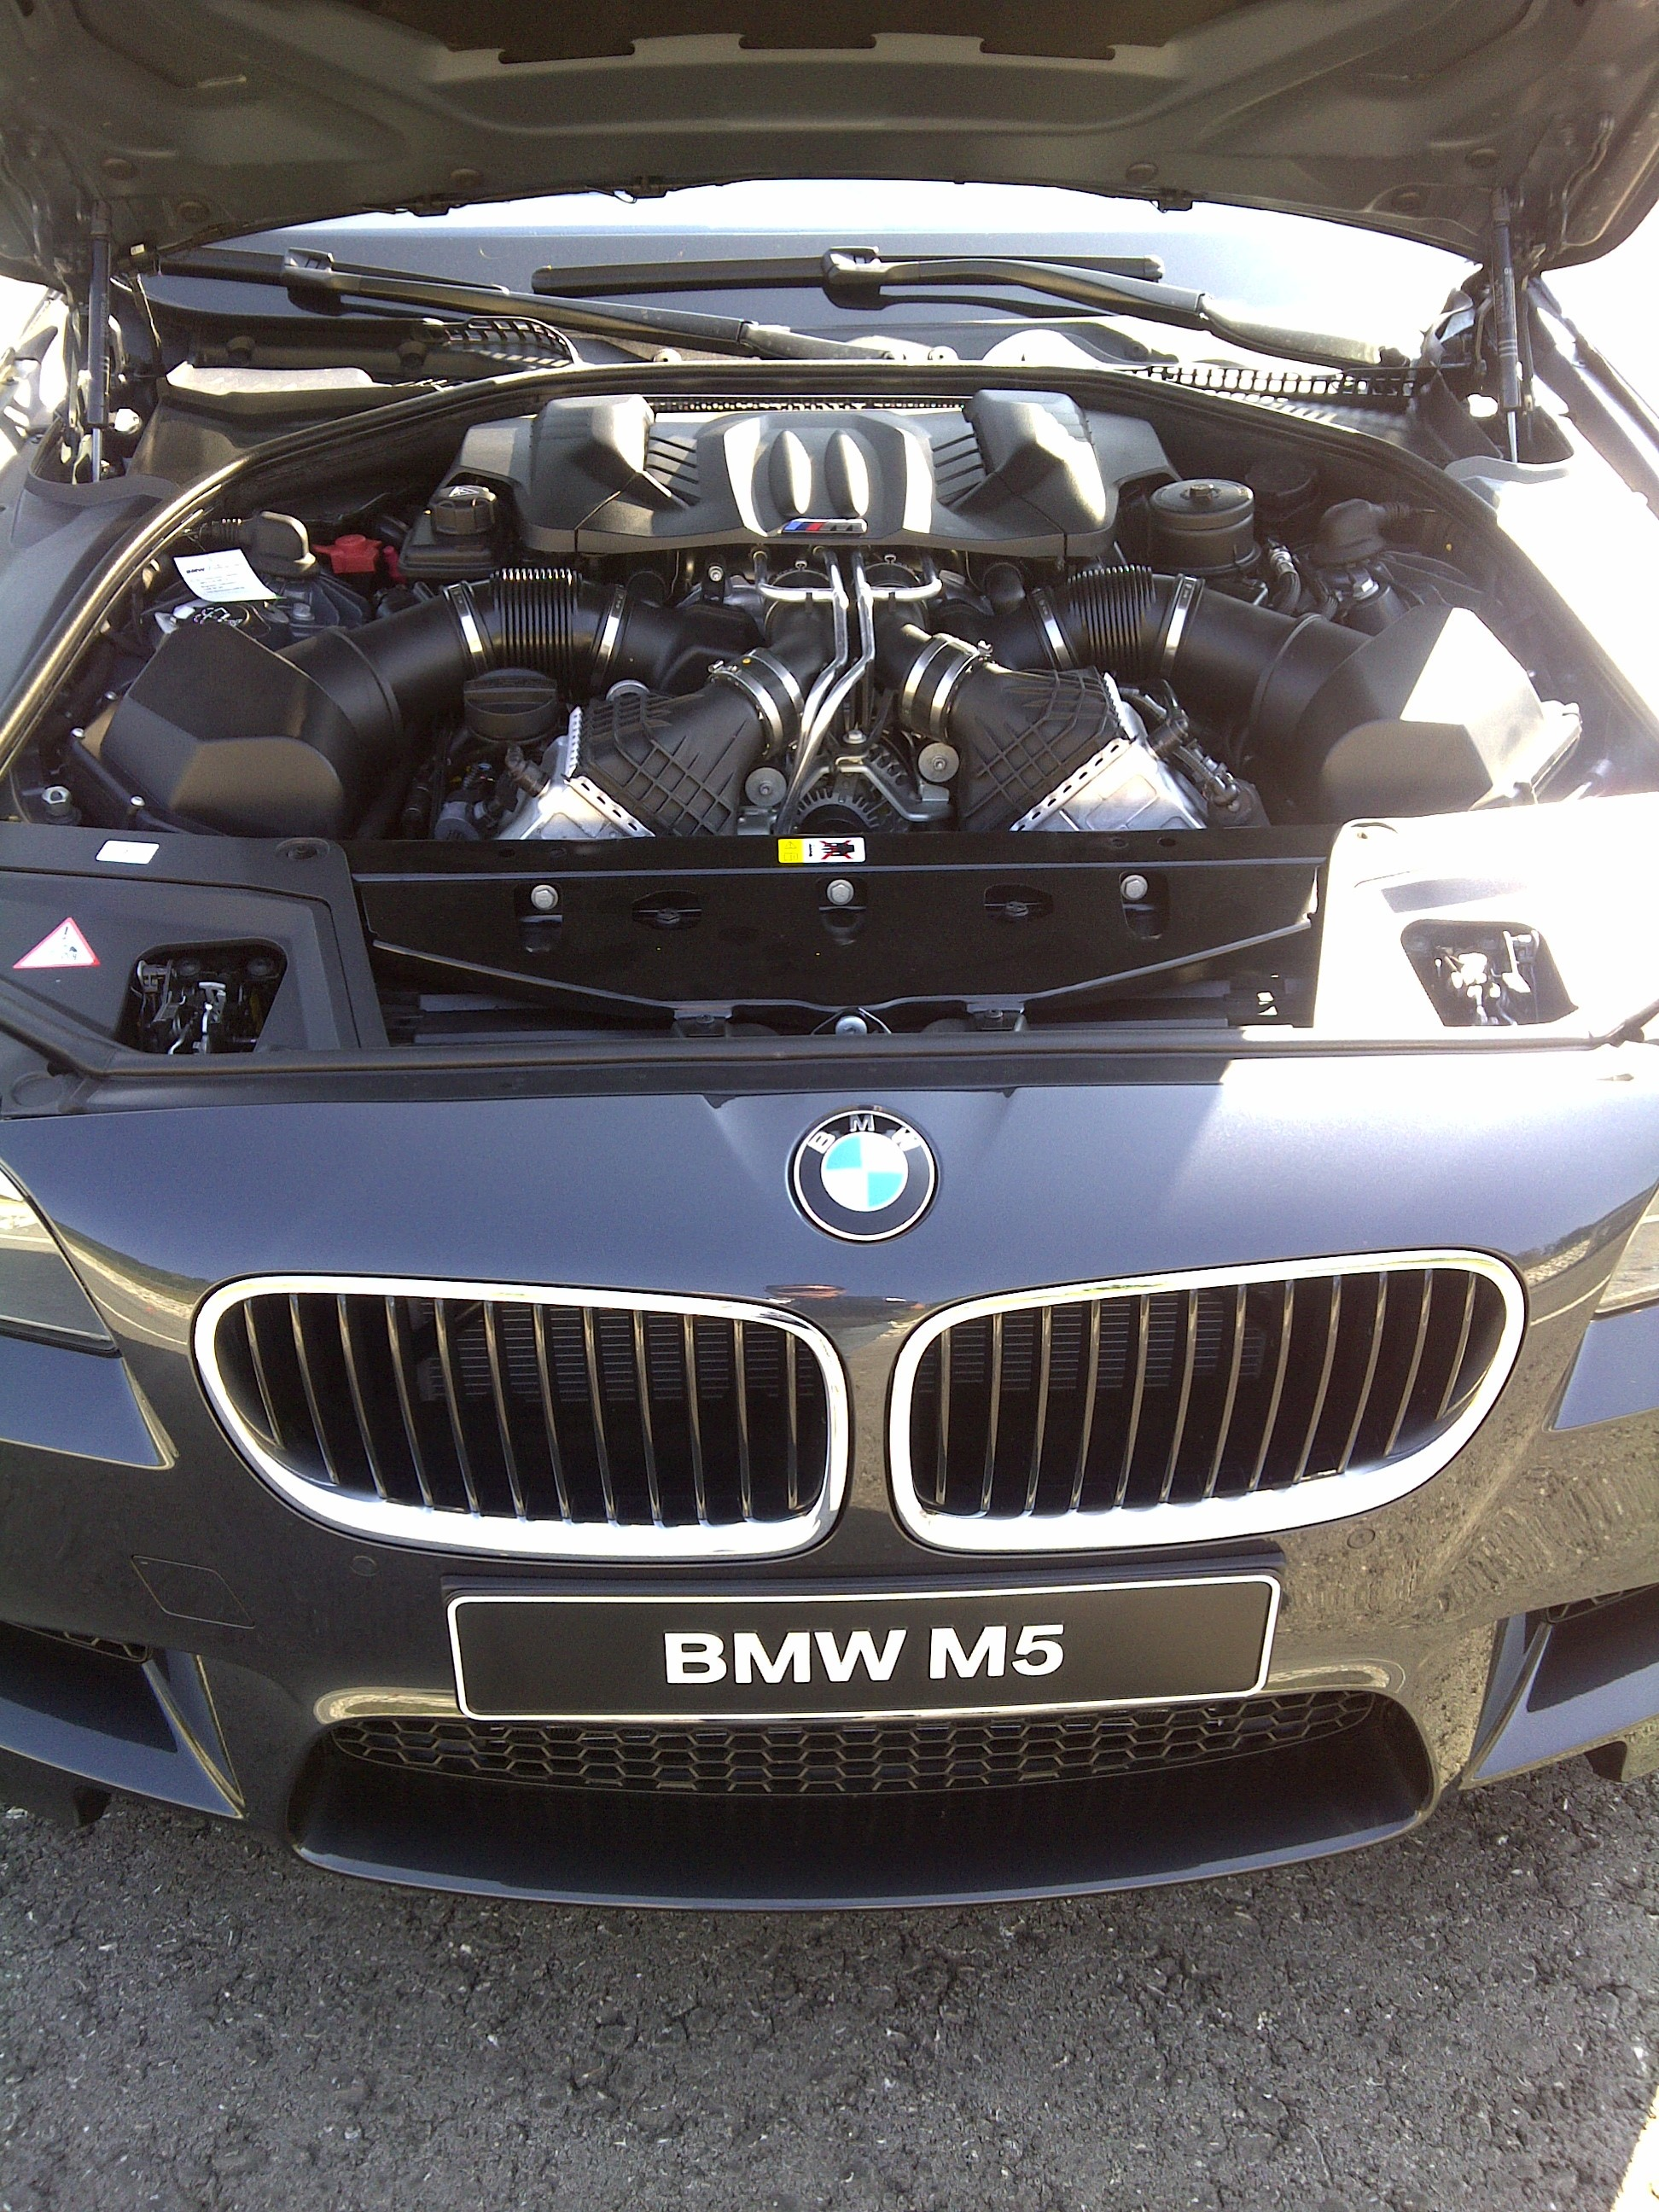 Saltzburgring [With the new BMW M5 F10 Twin Turbo chasing BMW M3 Competition Package]-img-20110926-00499.jpg